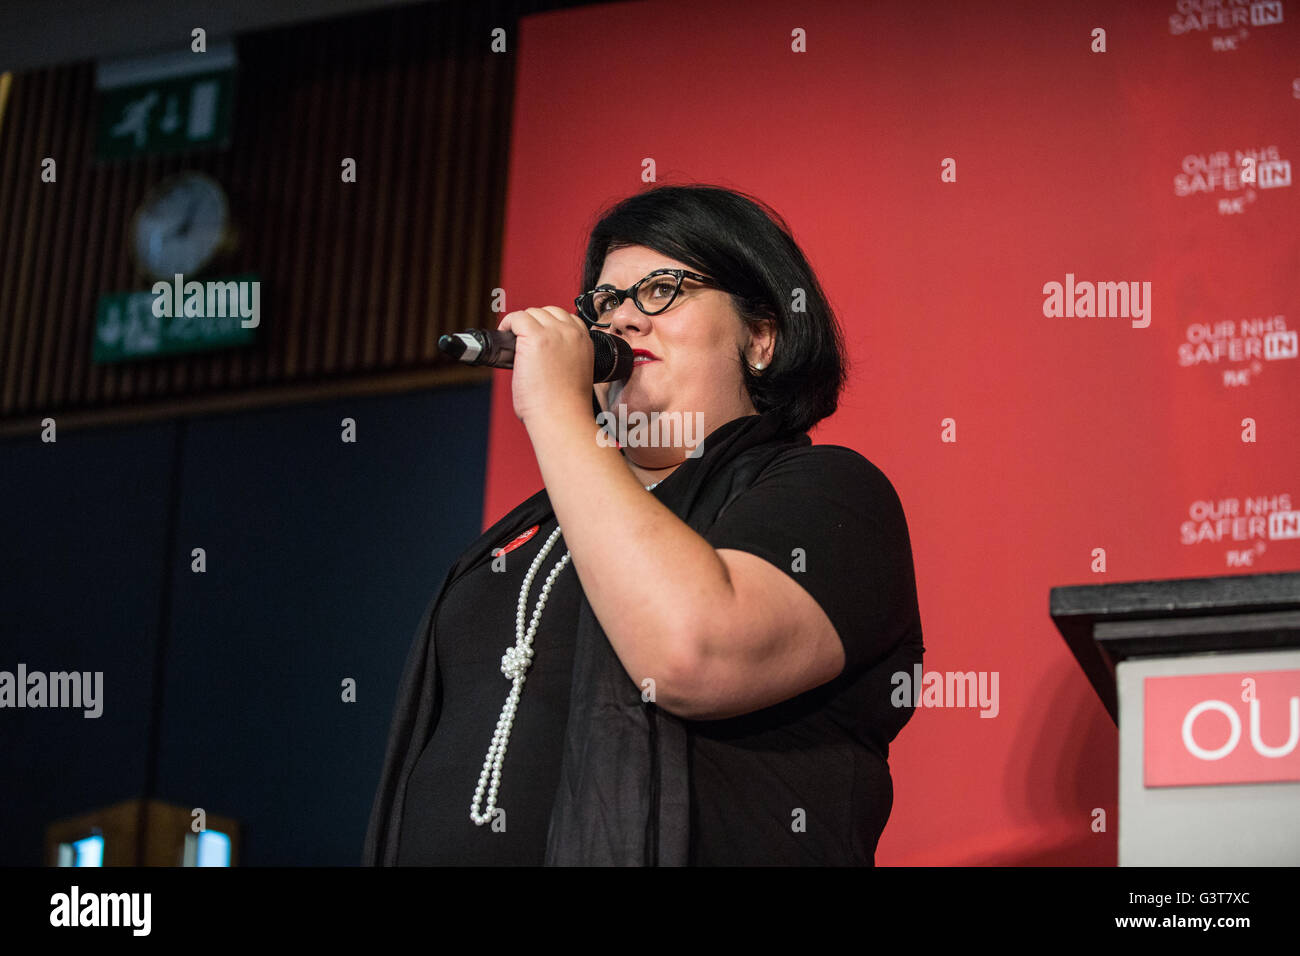 London, UK. 14th June, 2016. Amy Lamé, an American-born performer, writer, TV and radio presenter, presented - Stock Image